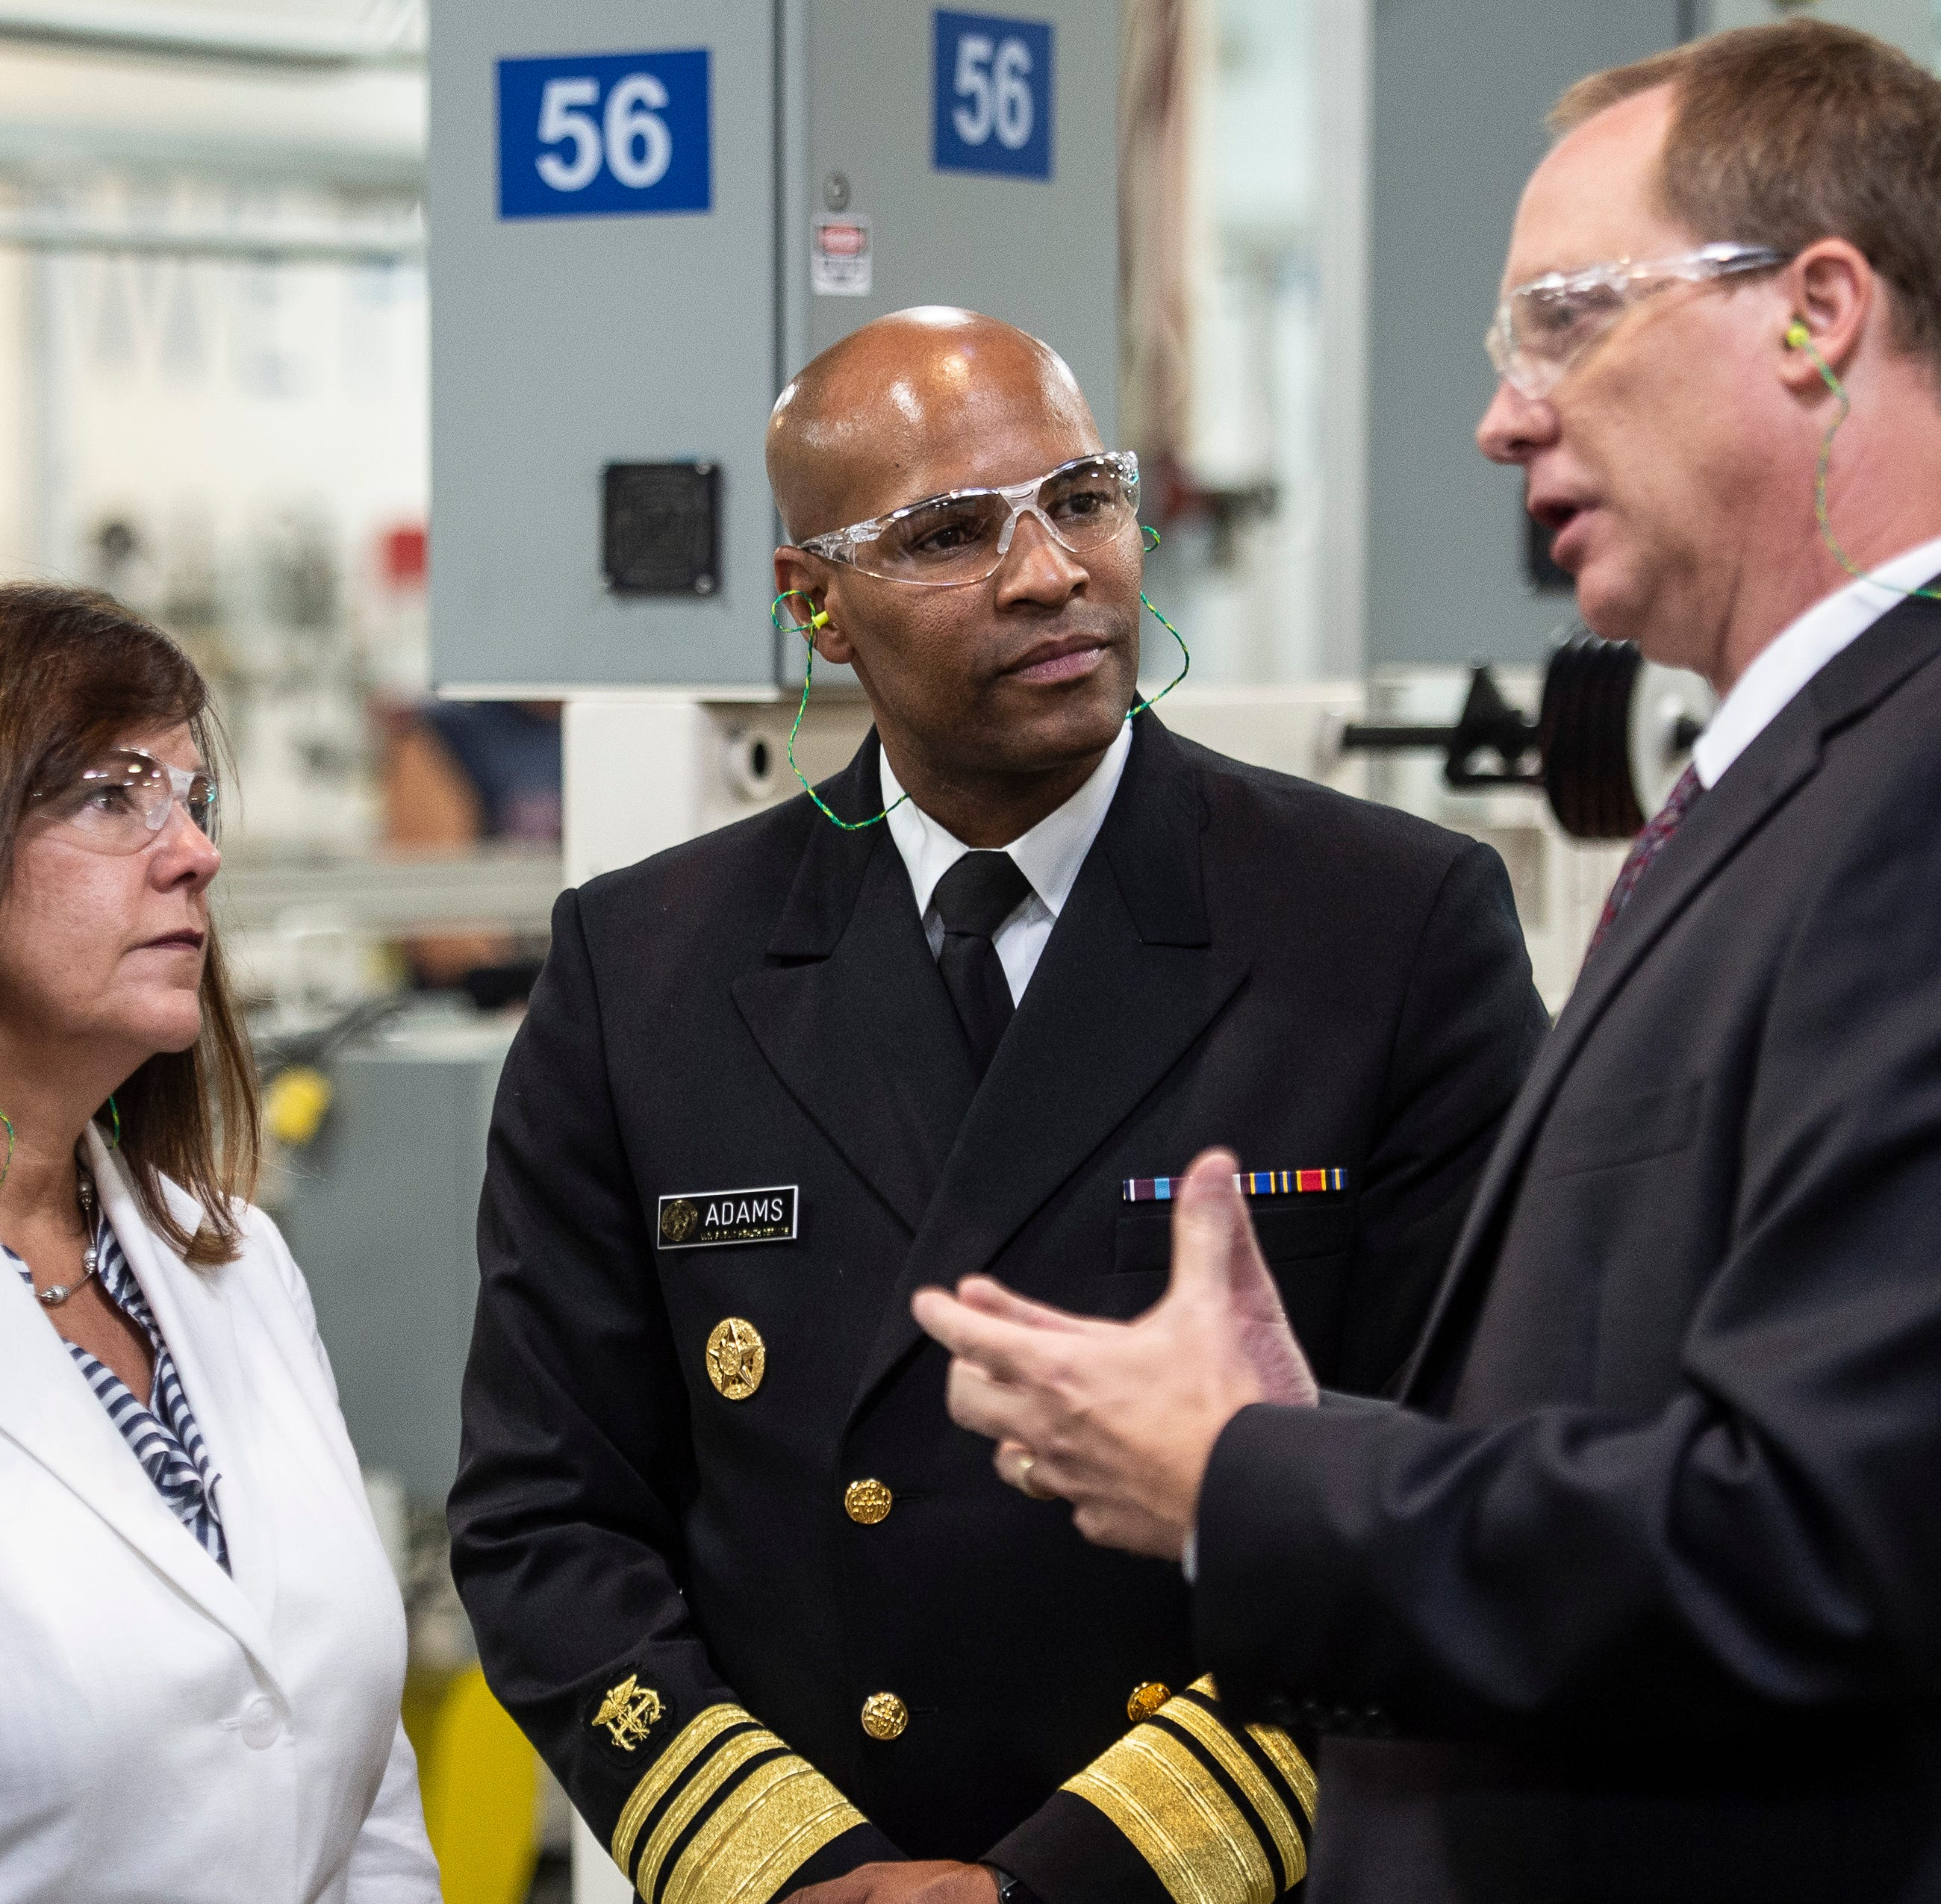 Labor Secretary Alexander Acosta and Second Lady Karen Pence and Surgeon General Dr. Jerome Adams listen to Belden plant manager David Hooper during a tour of the company's wire and cable facility on Tuesday, Sept. 18, 2018.